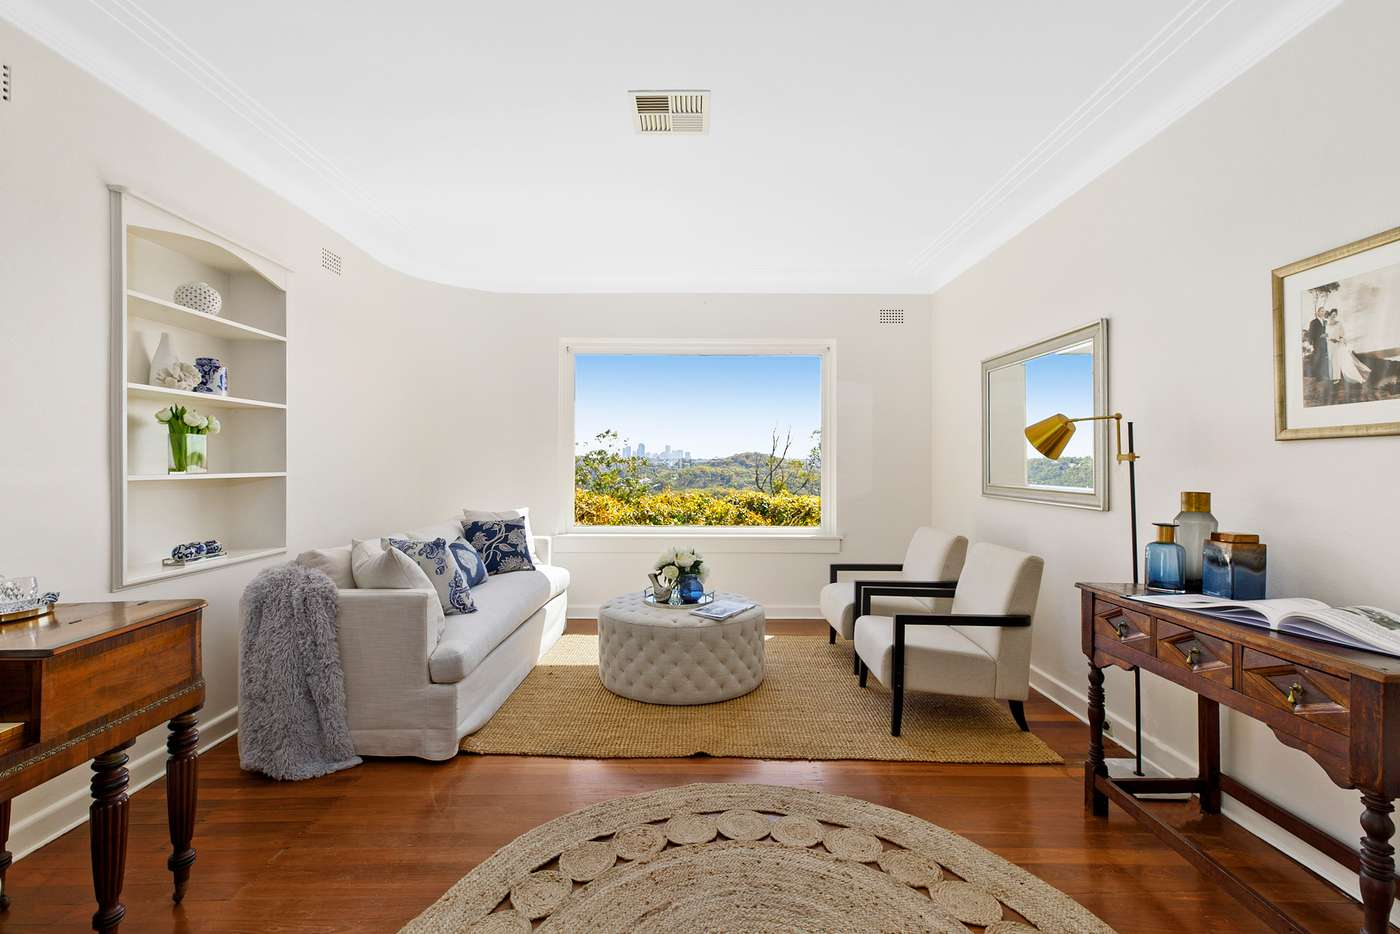 Fifth view of Homely house listing, 40 Castle Circuit, Seaforth NSW 2092